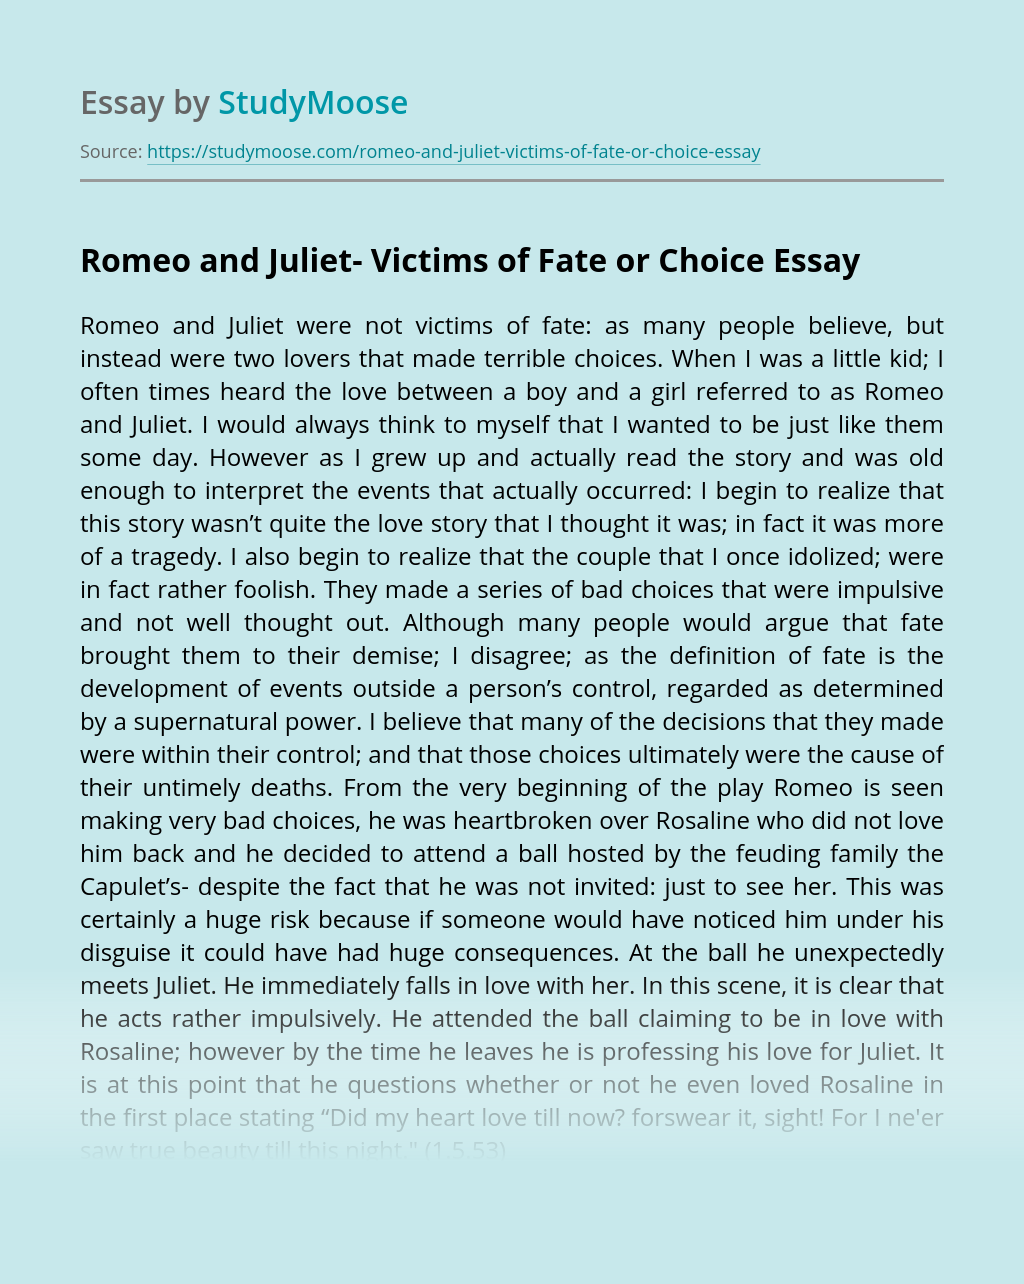 Romeo and Juliet- Victims of Fate or Choice